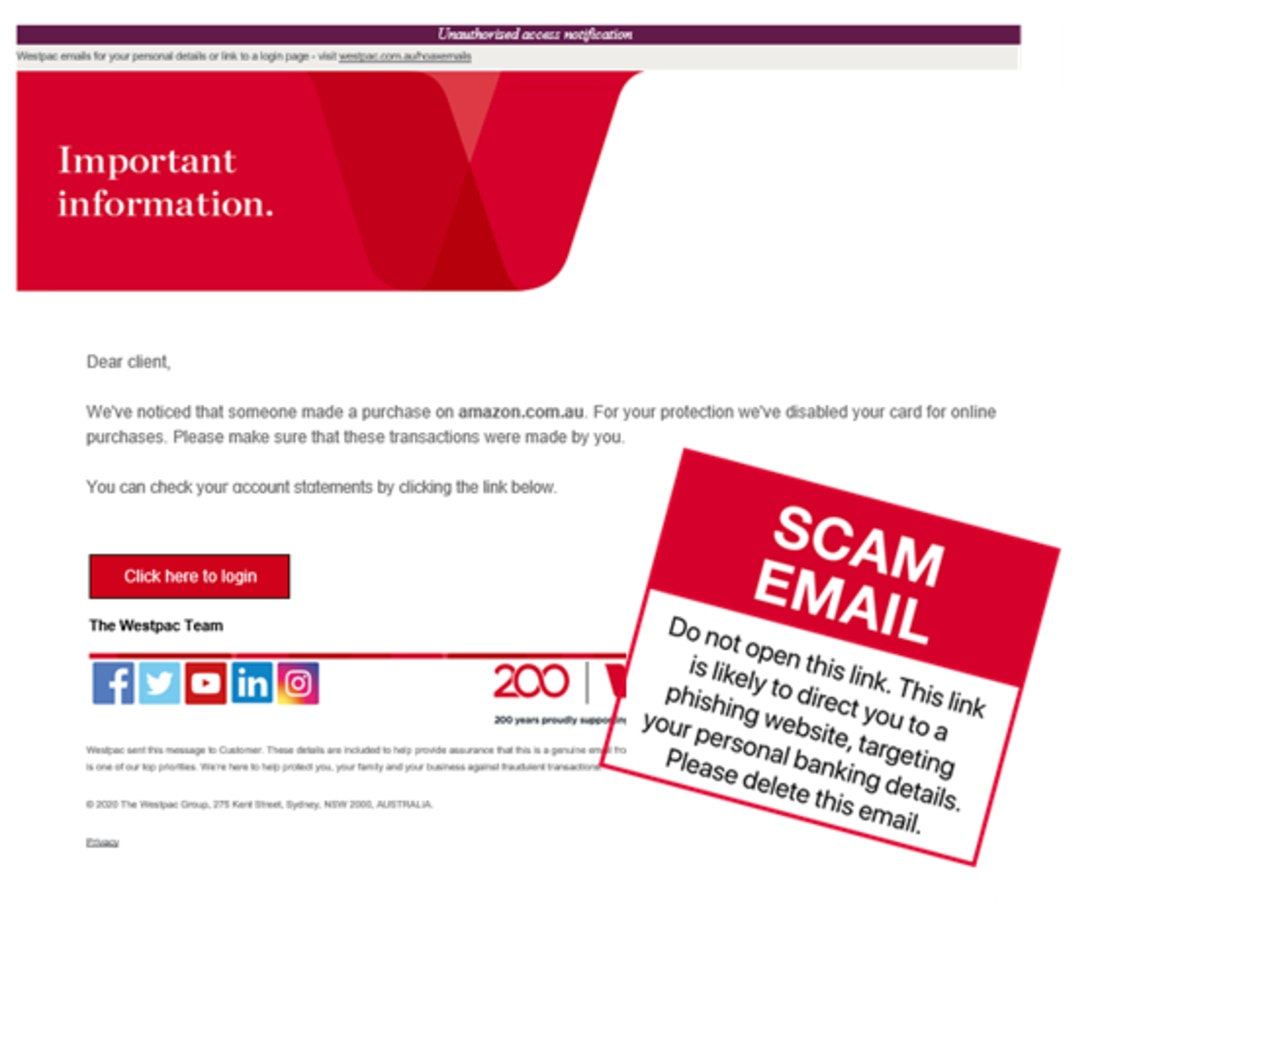 Westpac - scam email alert. For Kids News